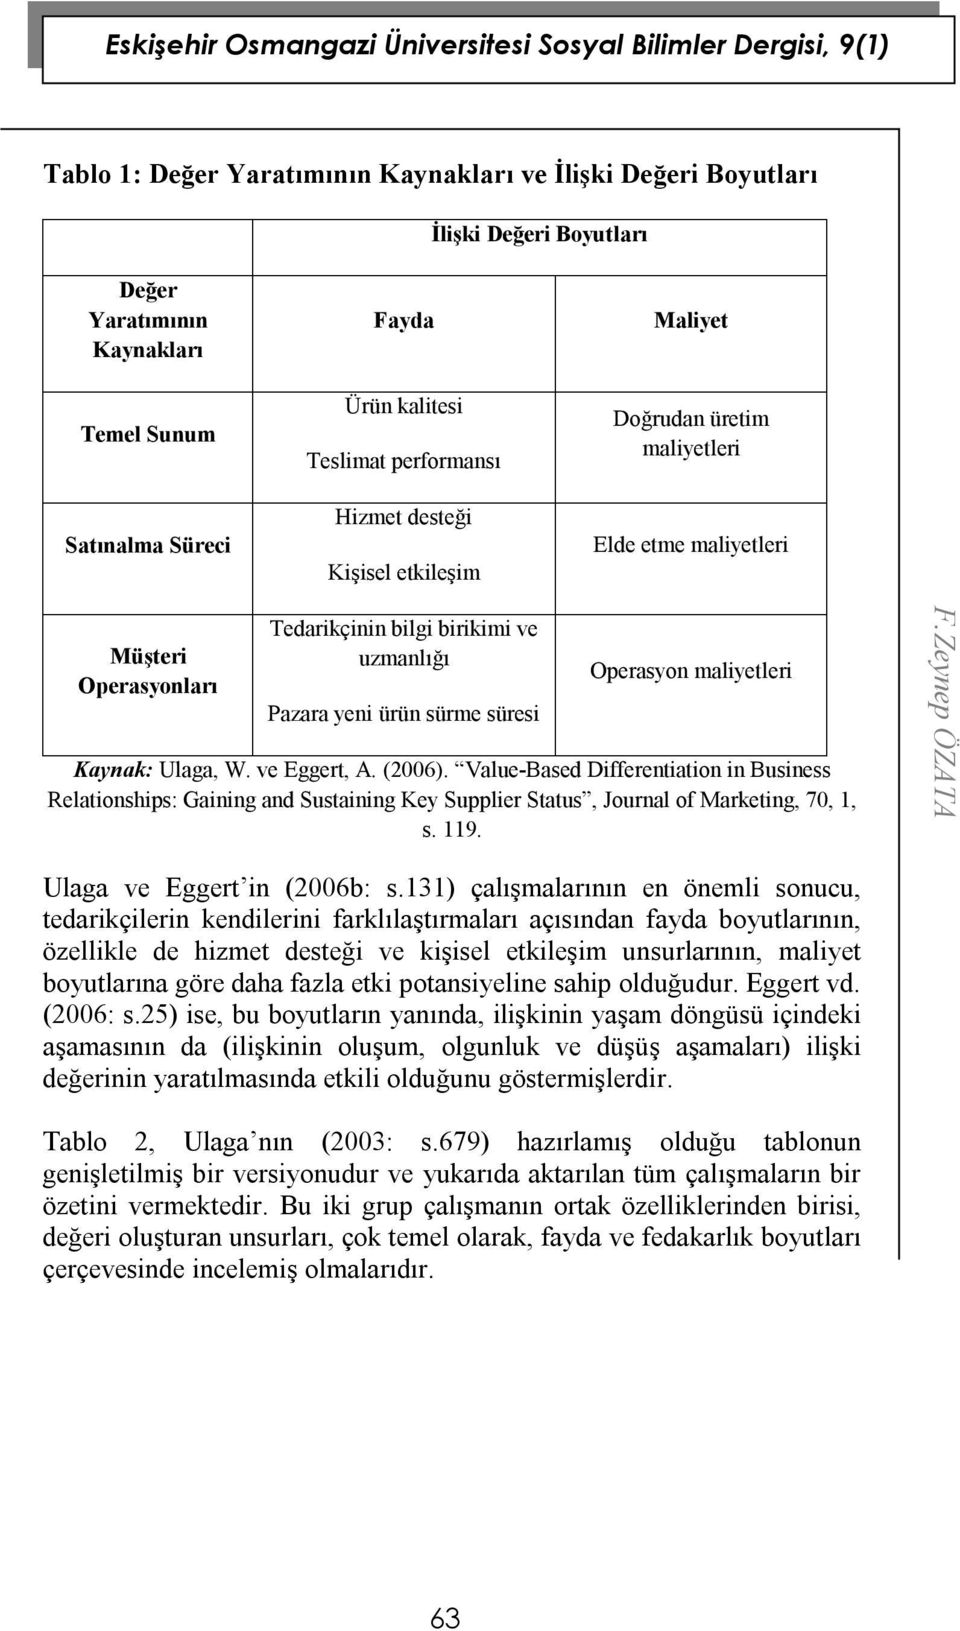 Kaynak: Ulaga, W. ve Eggert, A. (2006). Value-Based Differentiation in Business Relationships: Gaining and Sustaining Key Supplier Status, Journal of Marketing, 70, 1, s. 119.